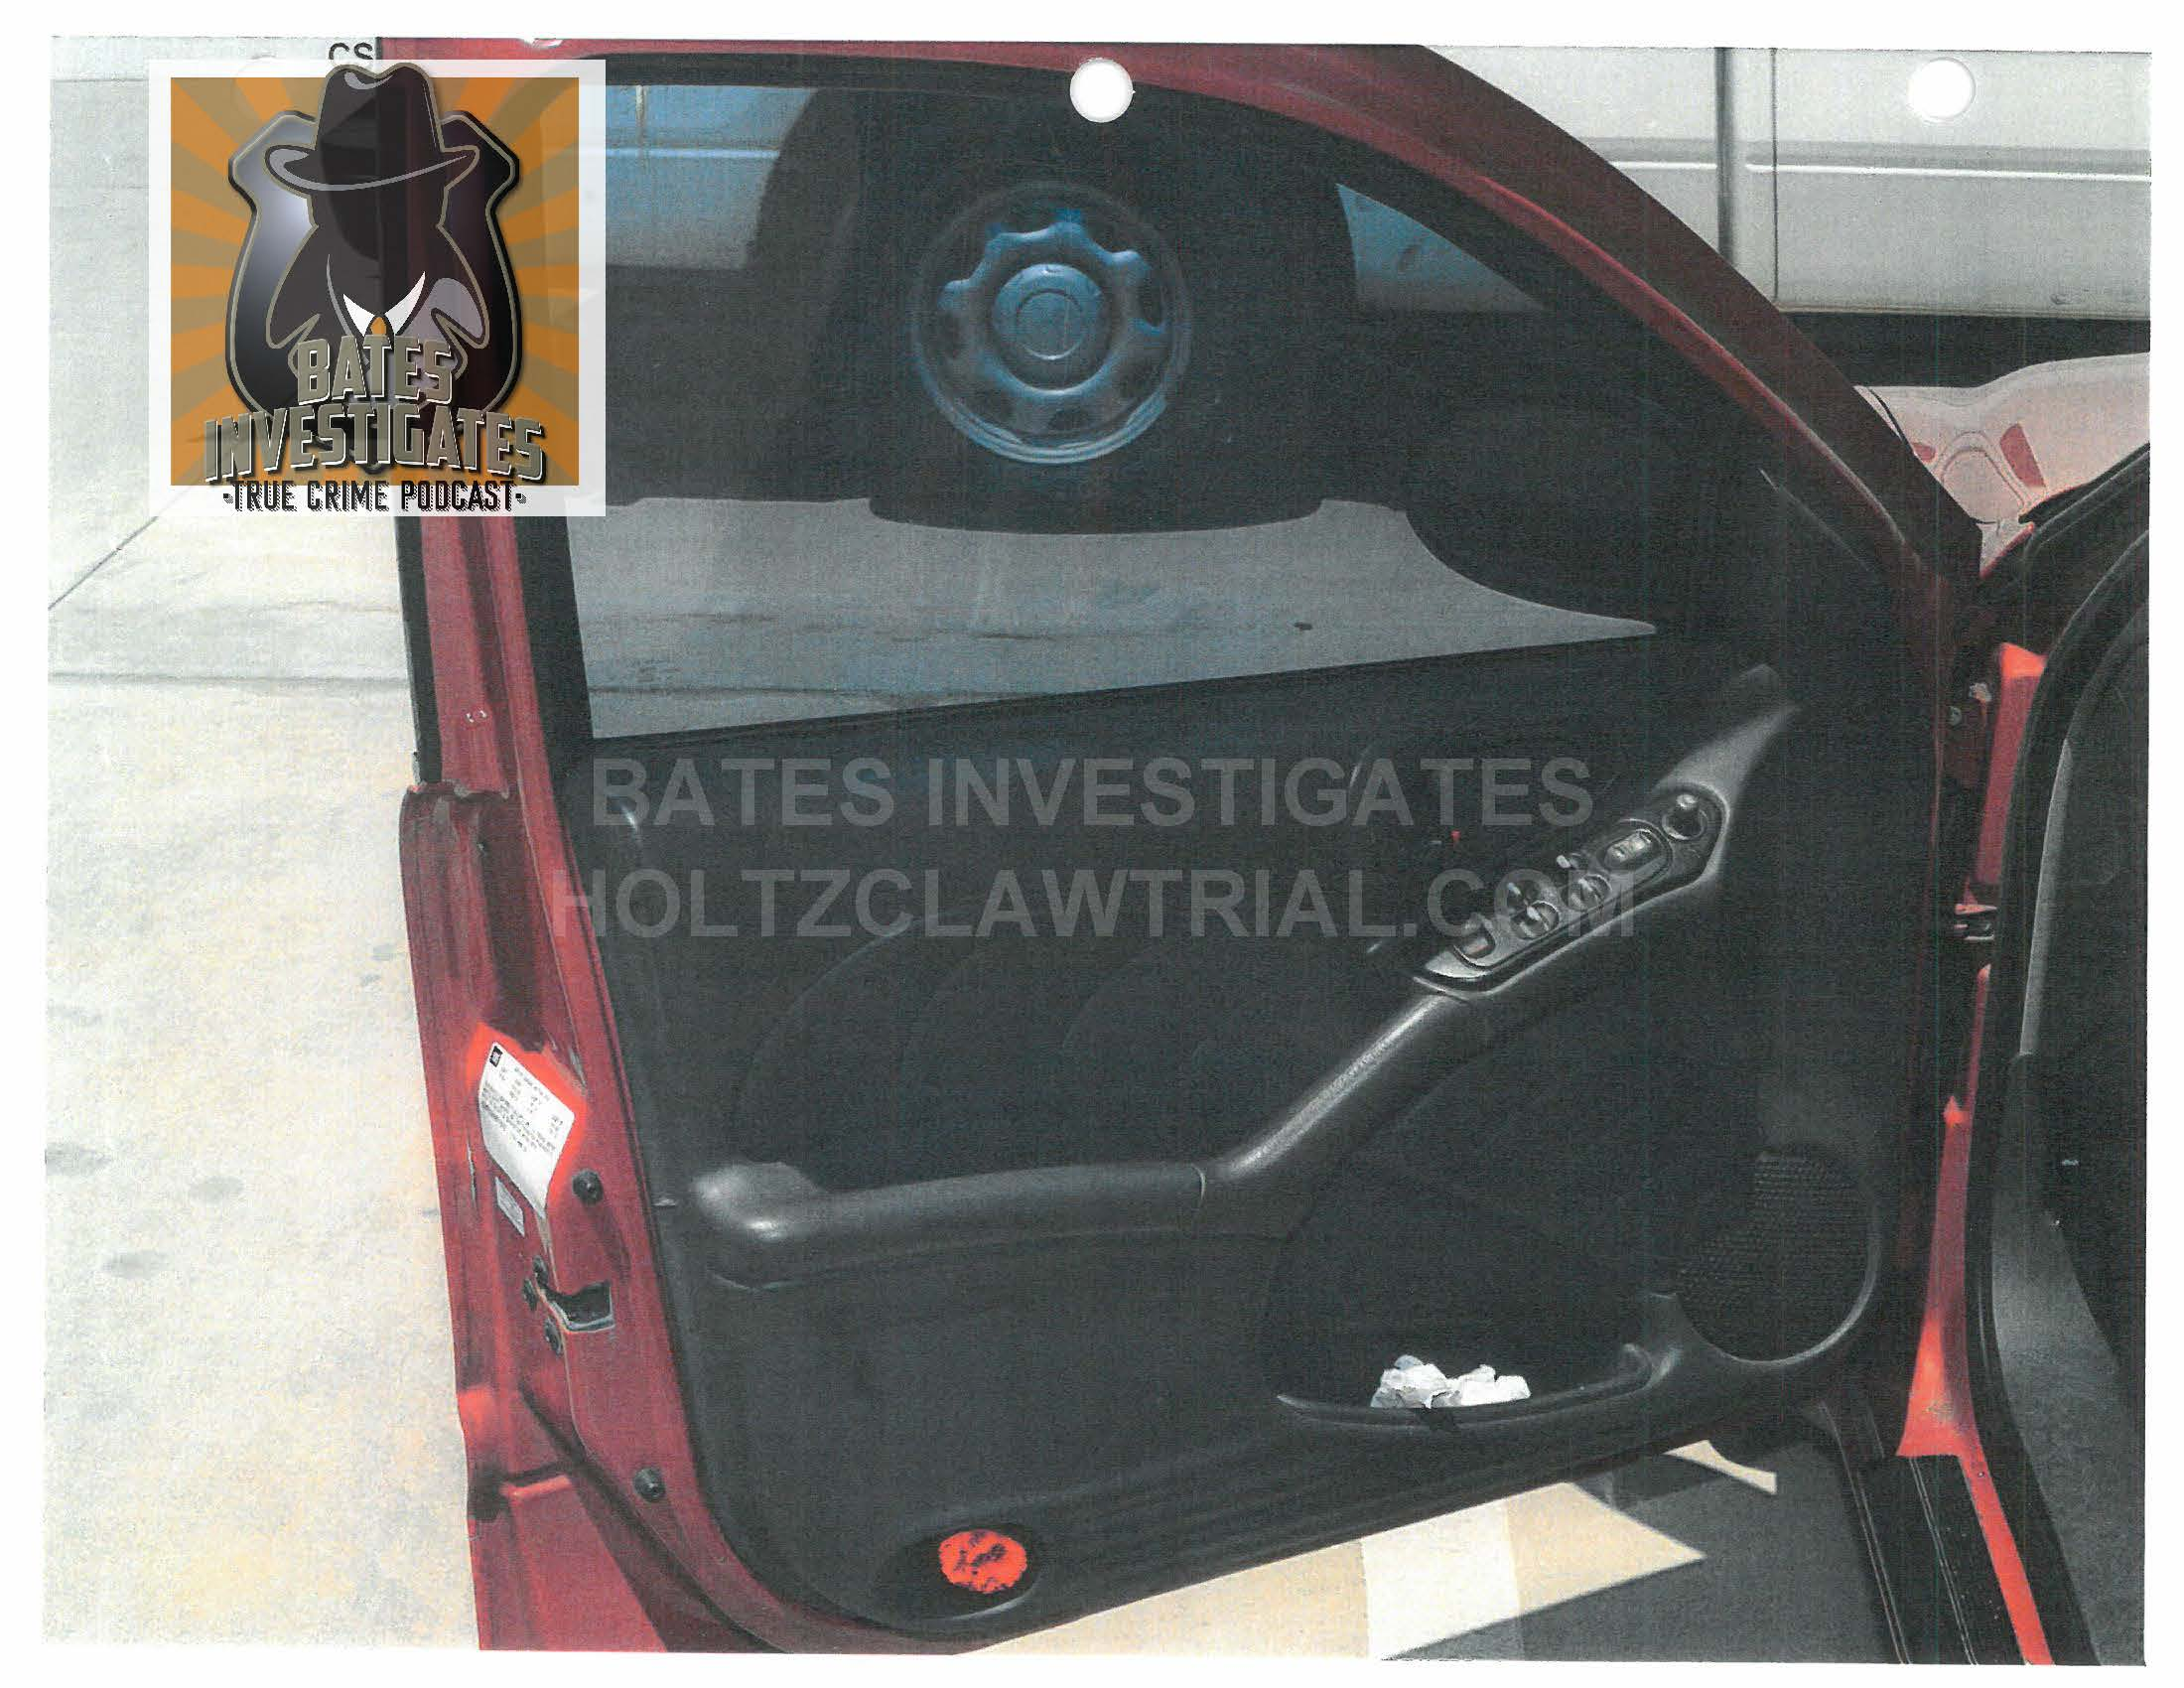 Holtzclaw Podcast Ep02 - Ligons Car - Watermarked_Page_08.jpg